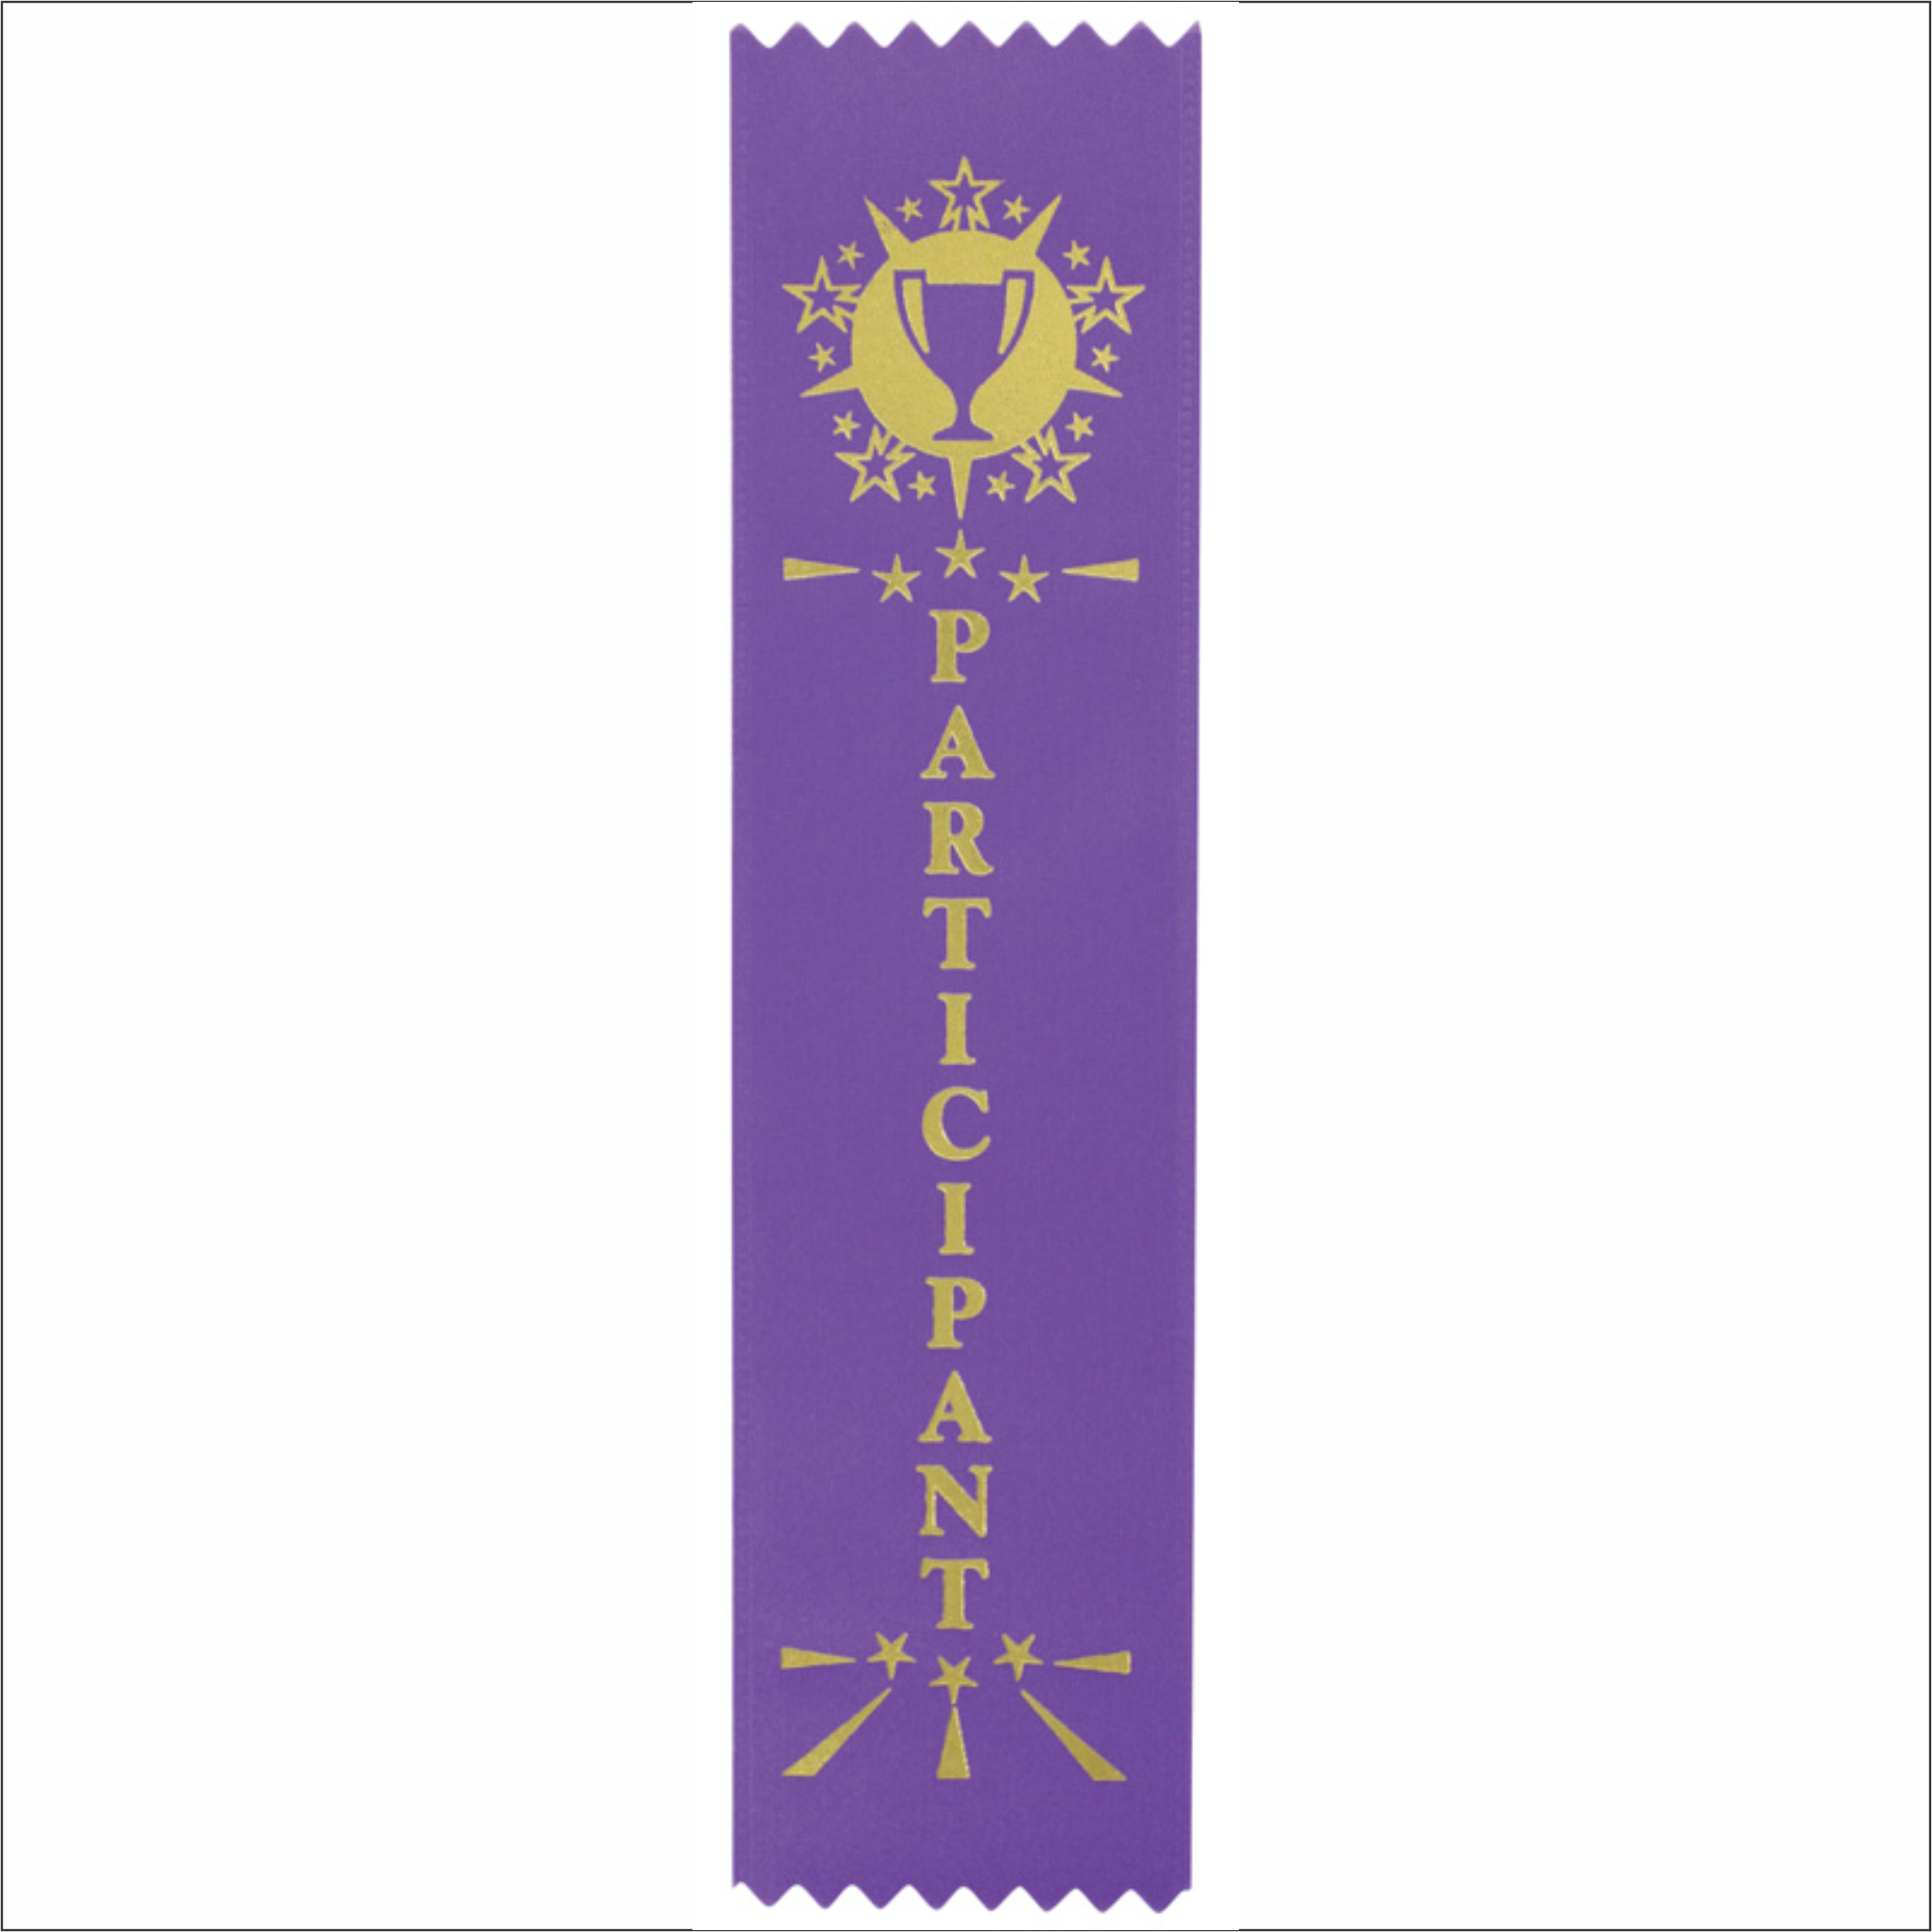 Participation Ribbons - Pack of 25 - SR-200 series